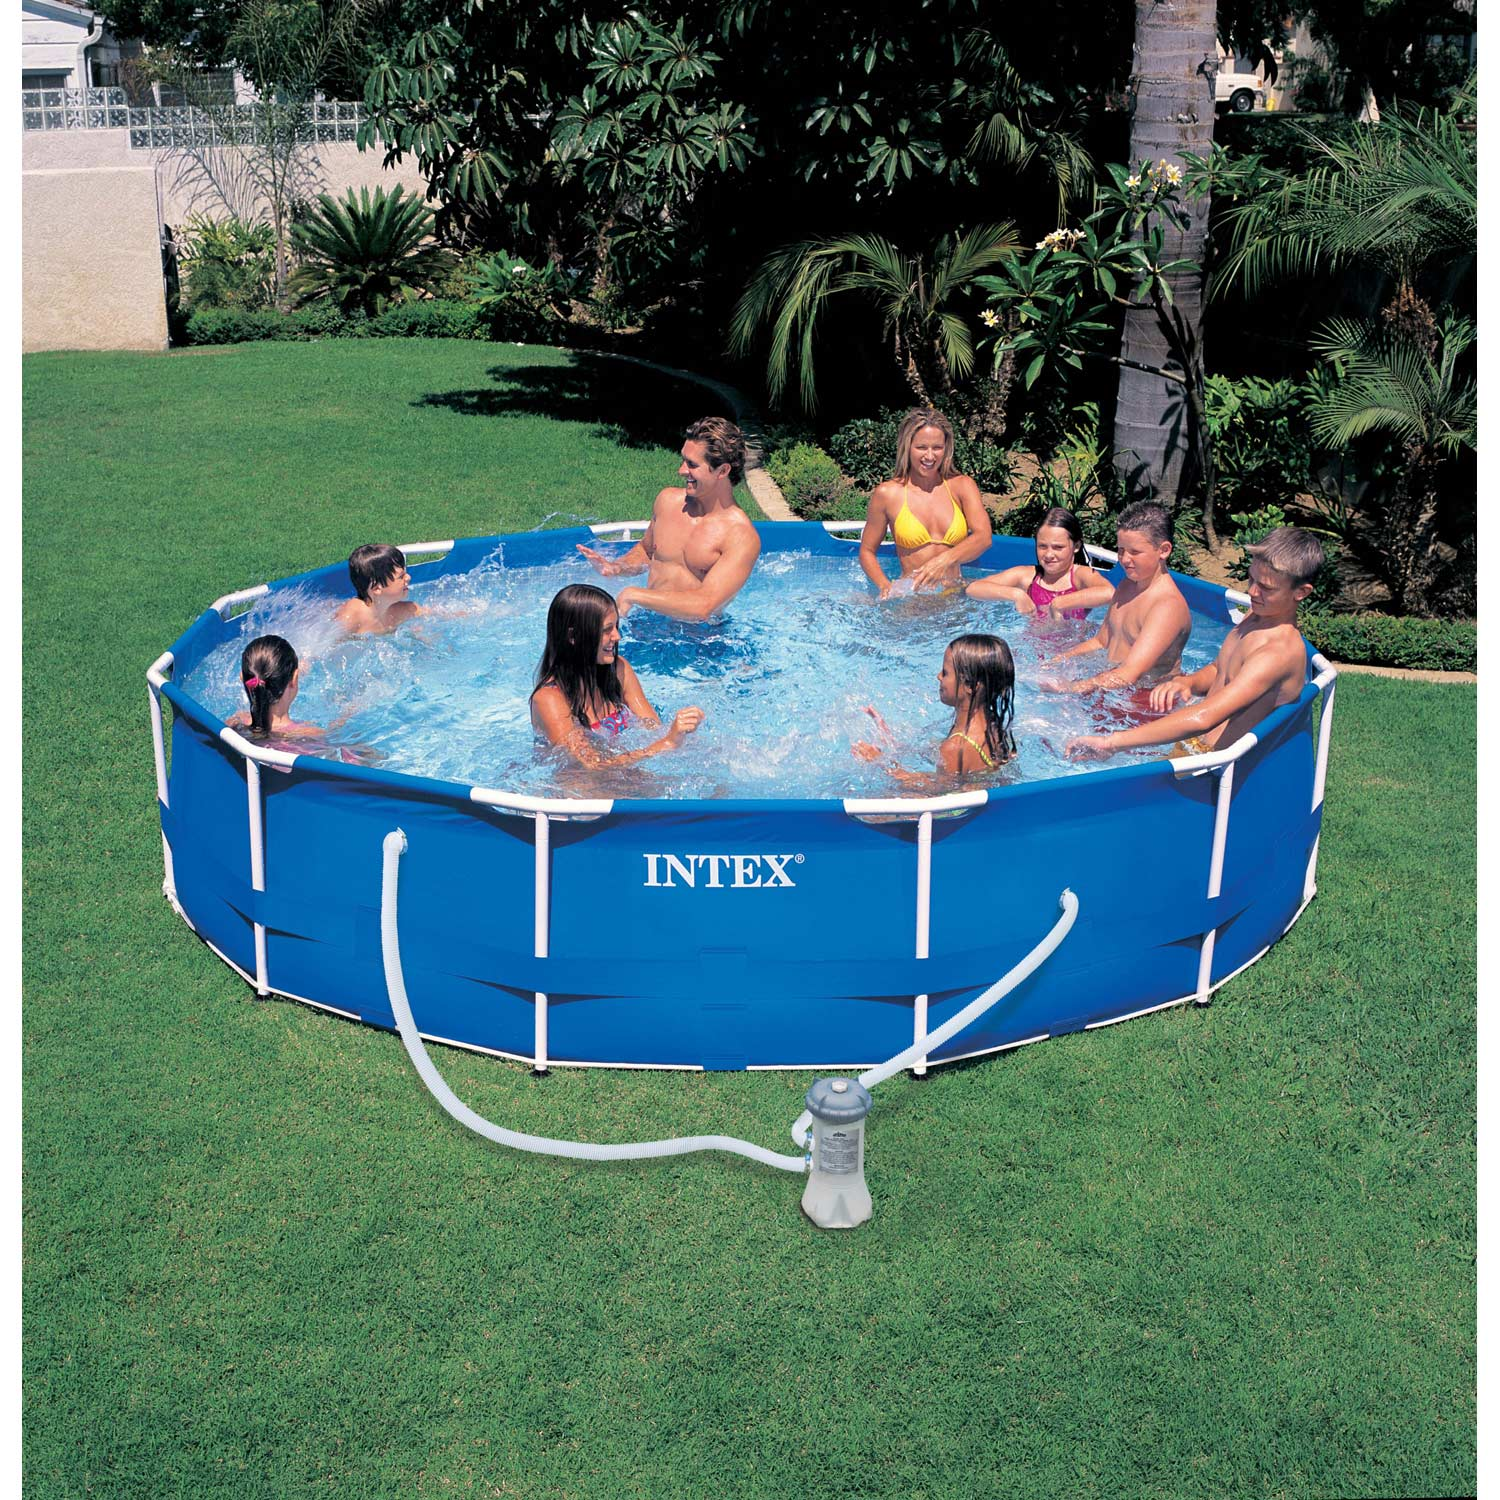 Piscine hors sol autoportante tubulaire metal frame intex for Piscine hors sol tubulaire ronde